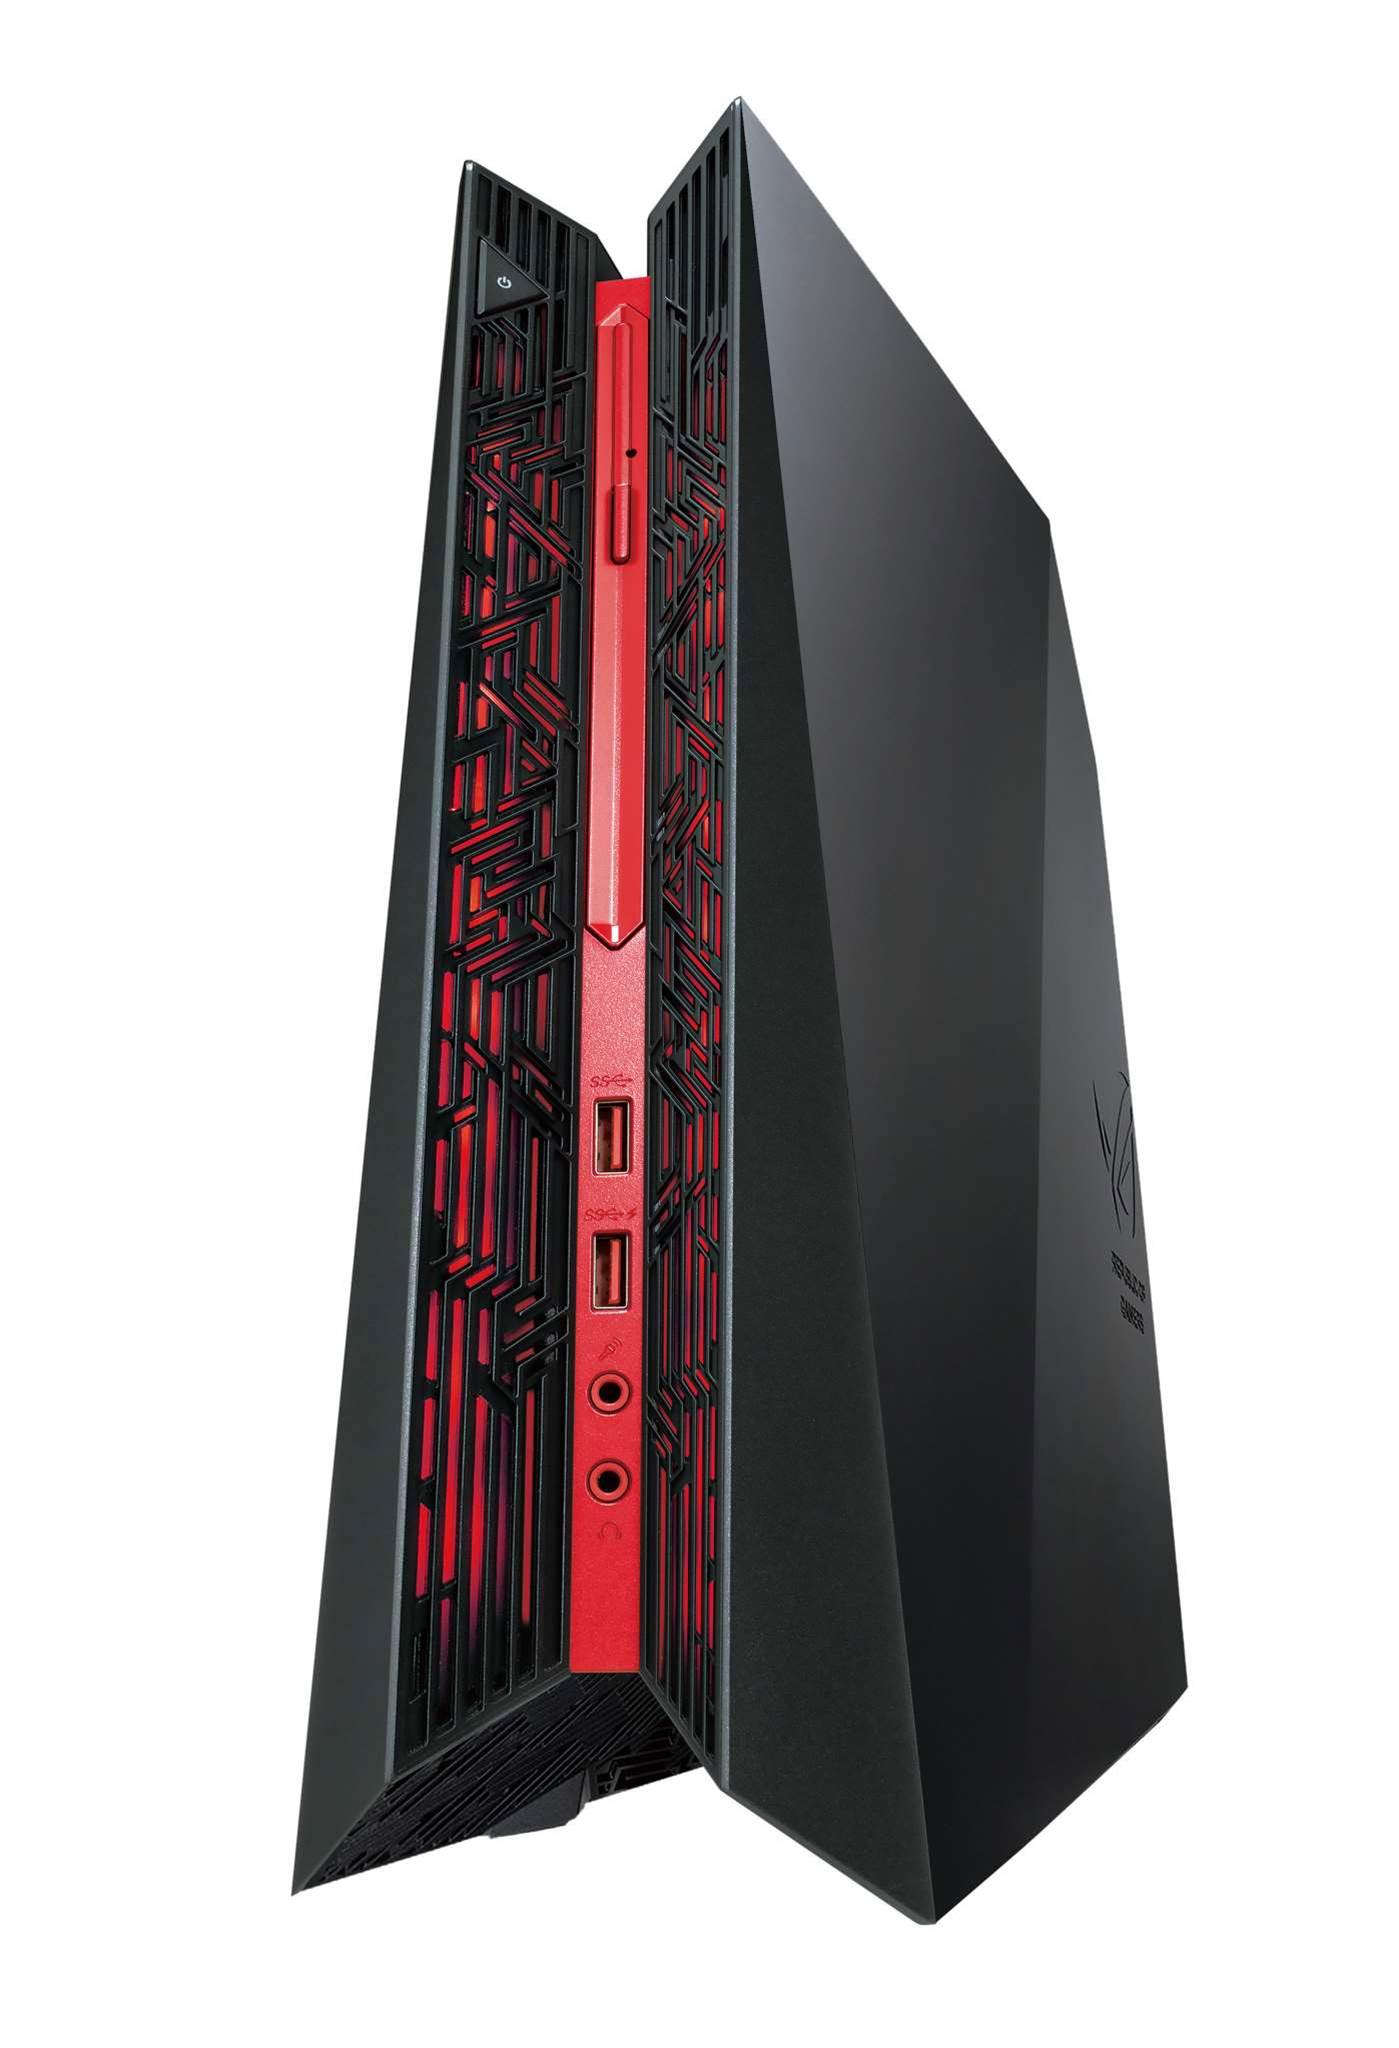 Asus adds a GTX 1080 to its G20 SFF gaming box